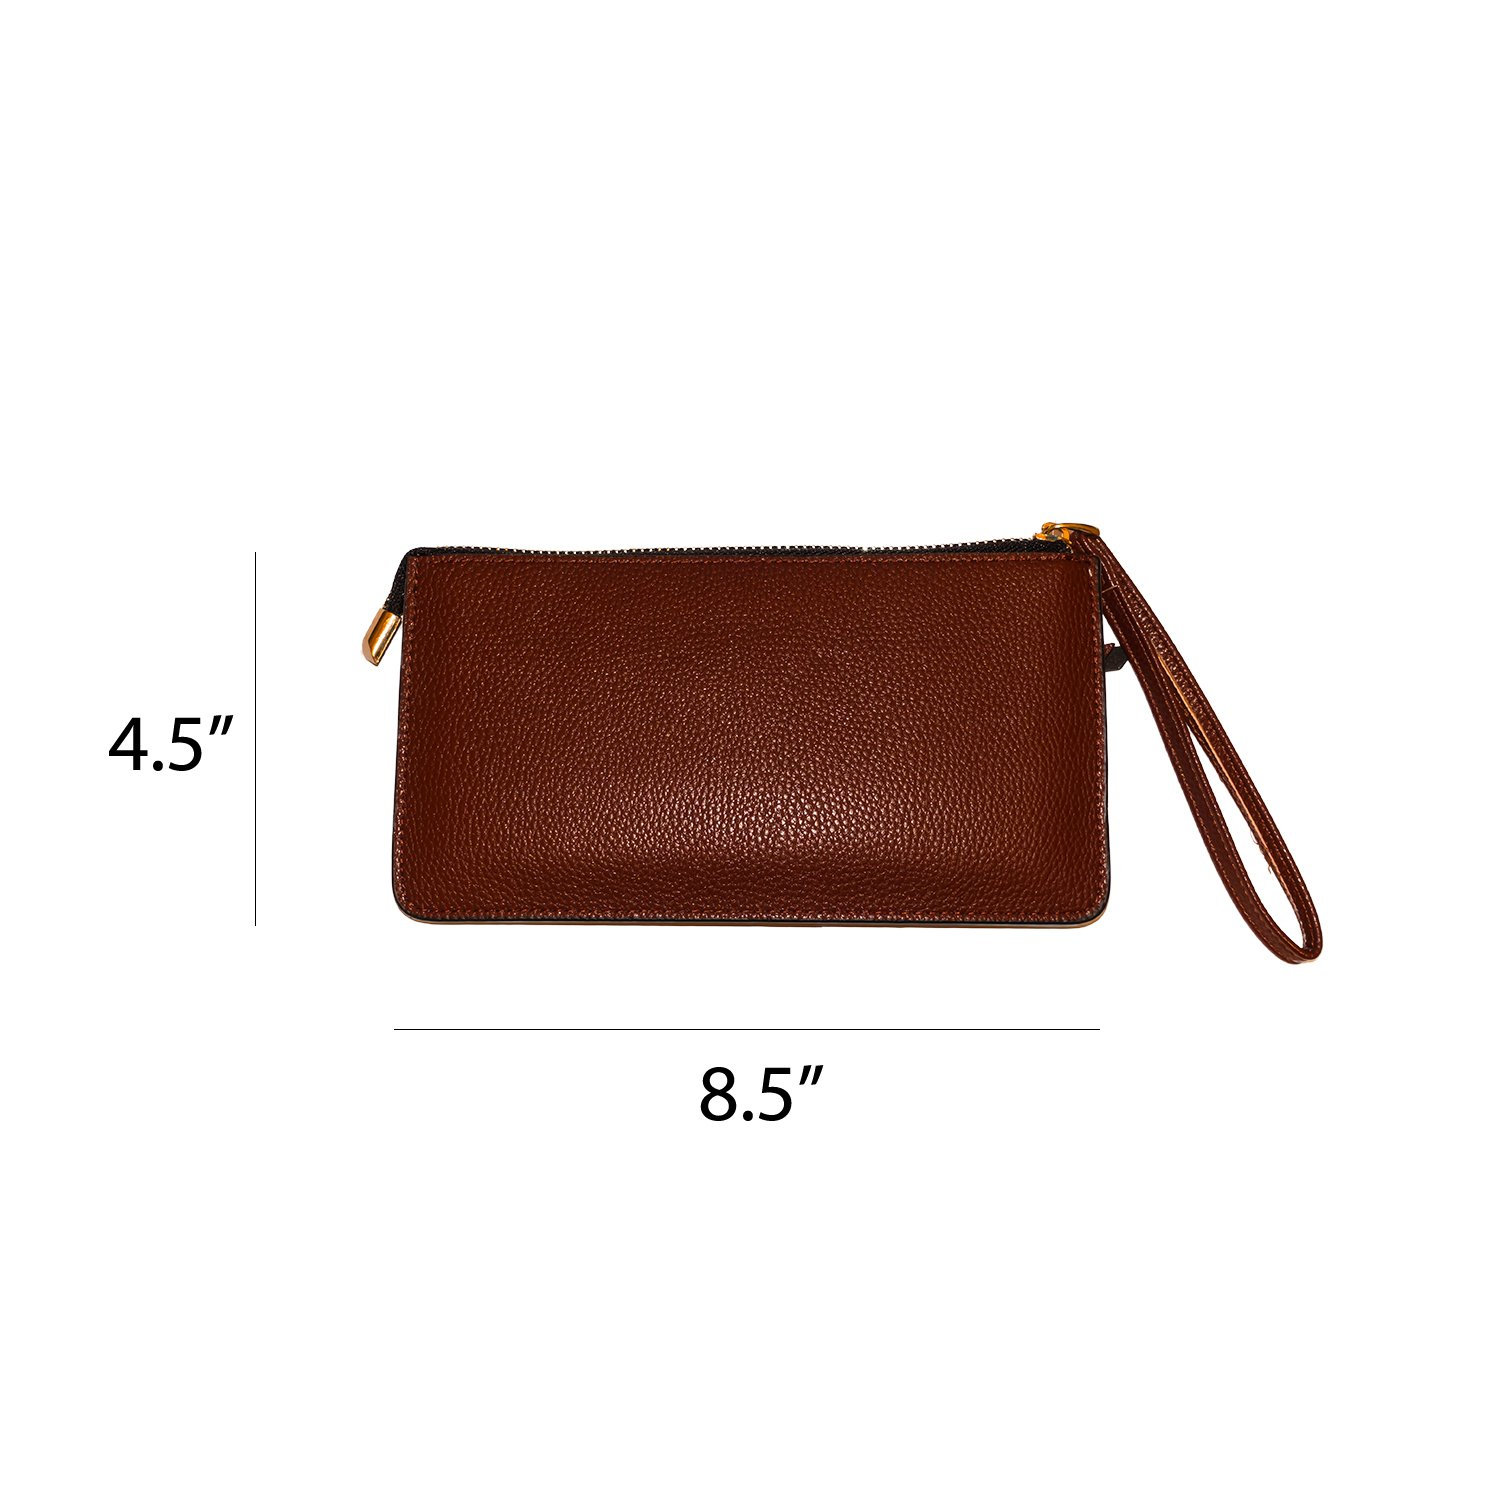 Carter Leatherworks Rodeo Womens PU Vegan Leather Wristlet Wallet Clutch Purse Fits Any Smartphone (Coffee) by Carter Leatherworks (Image #3)